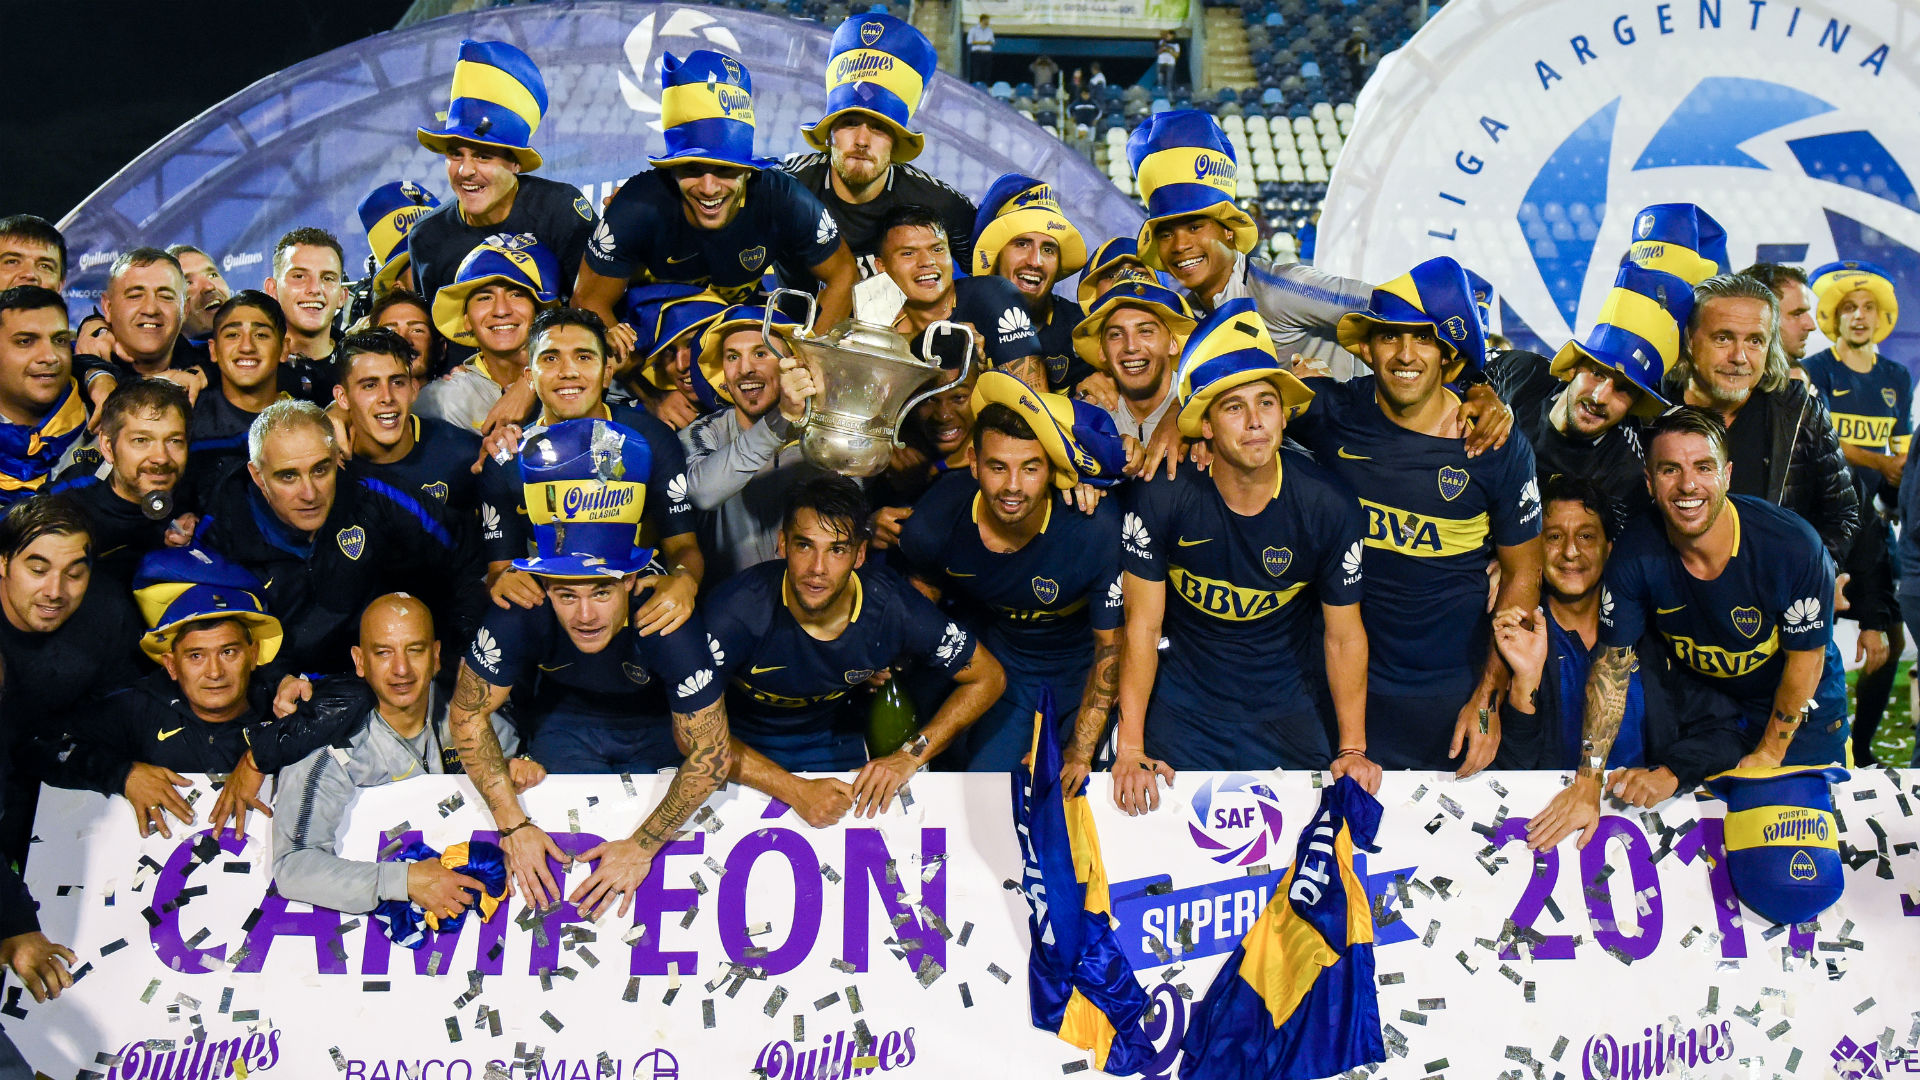 Boca campeon superliga 2017 18 0905208